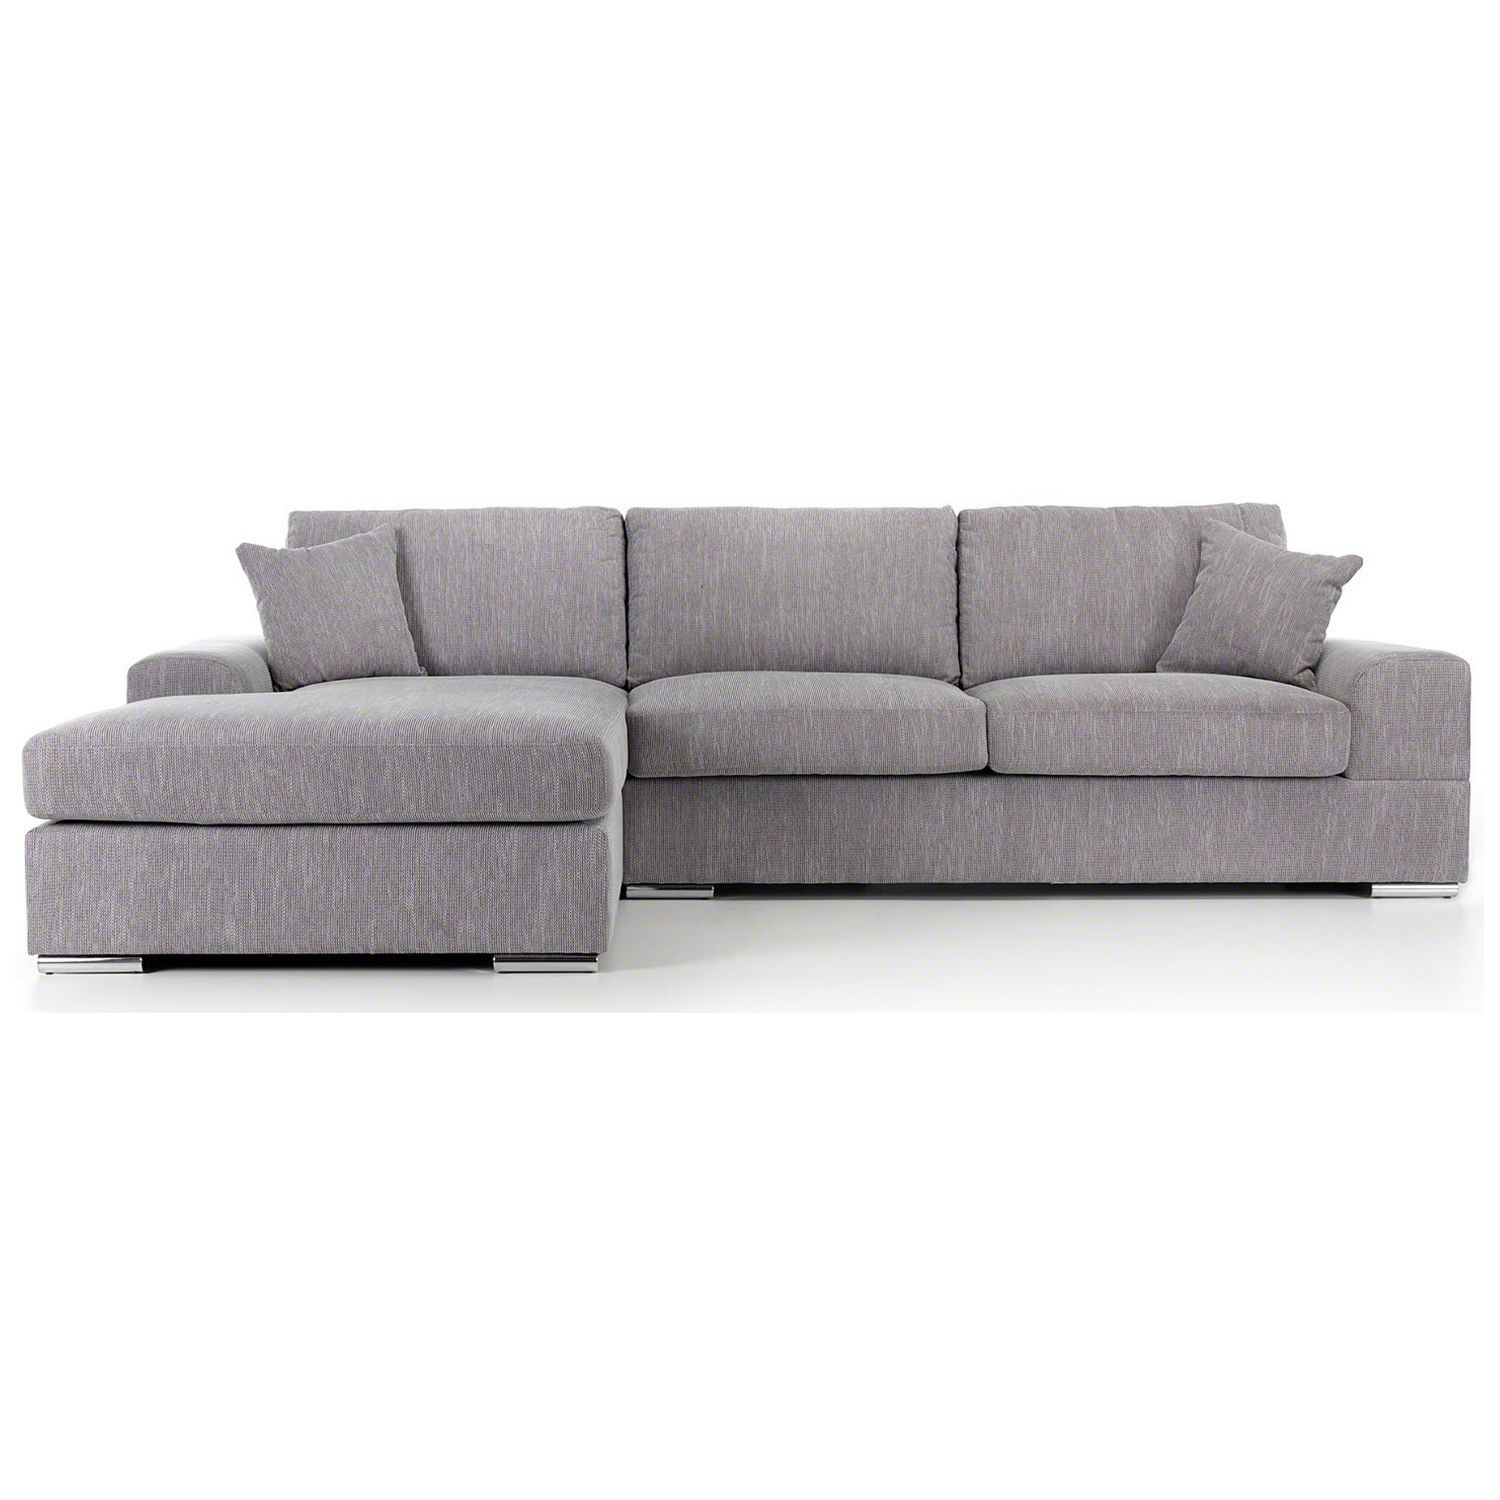 Next Day Sofas 2 Fabric Sofa Delivery Beds Uk